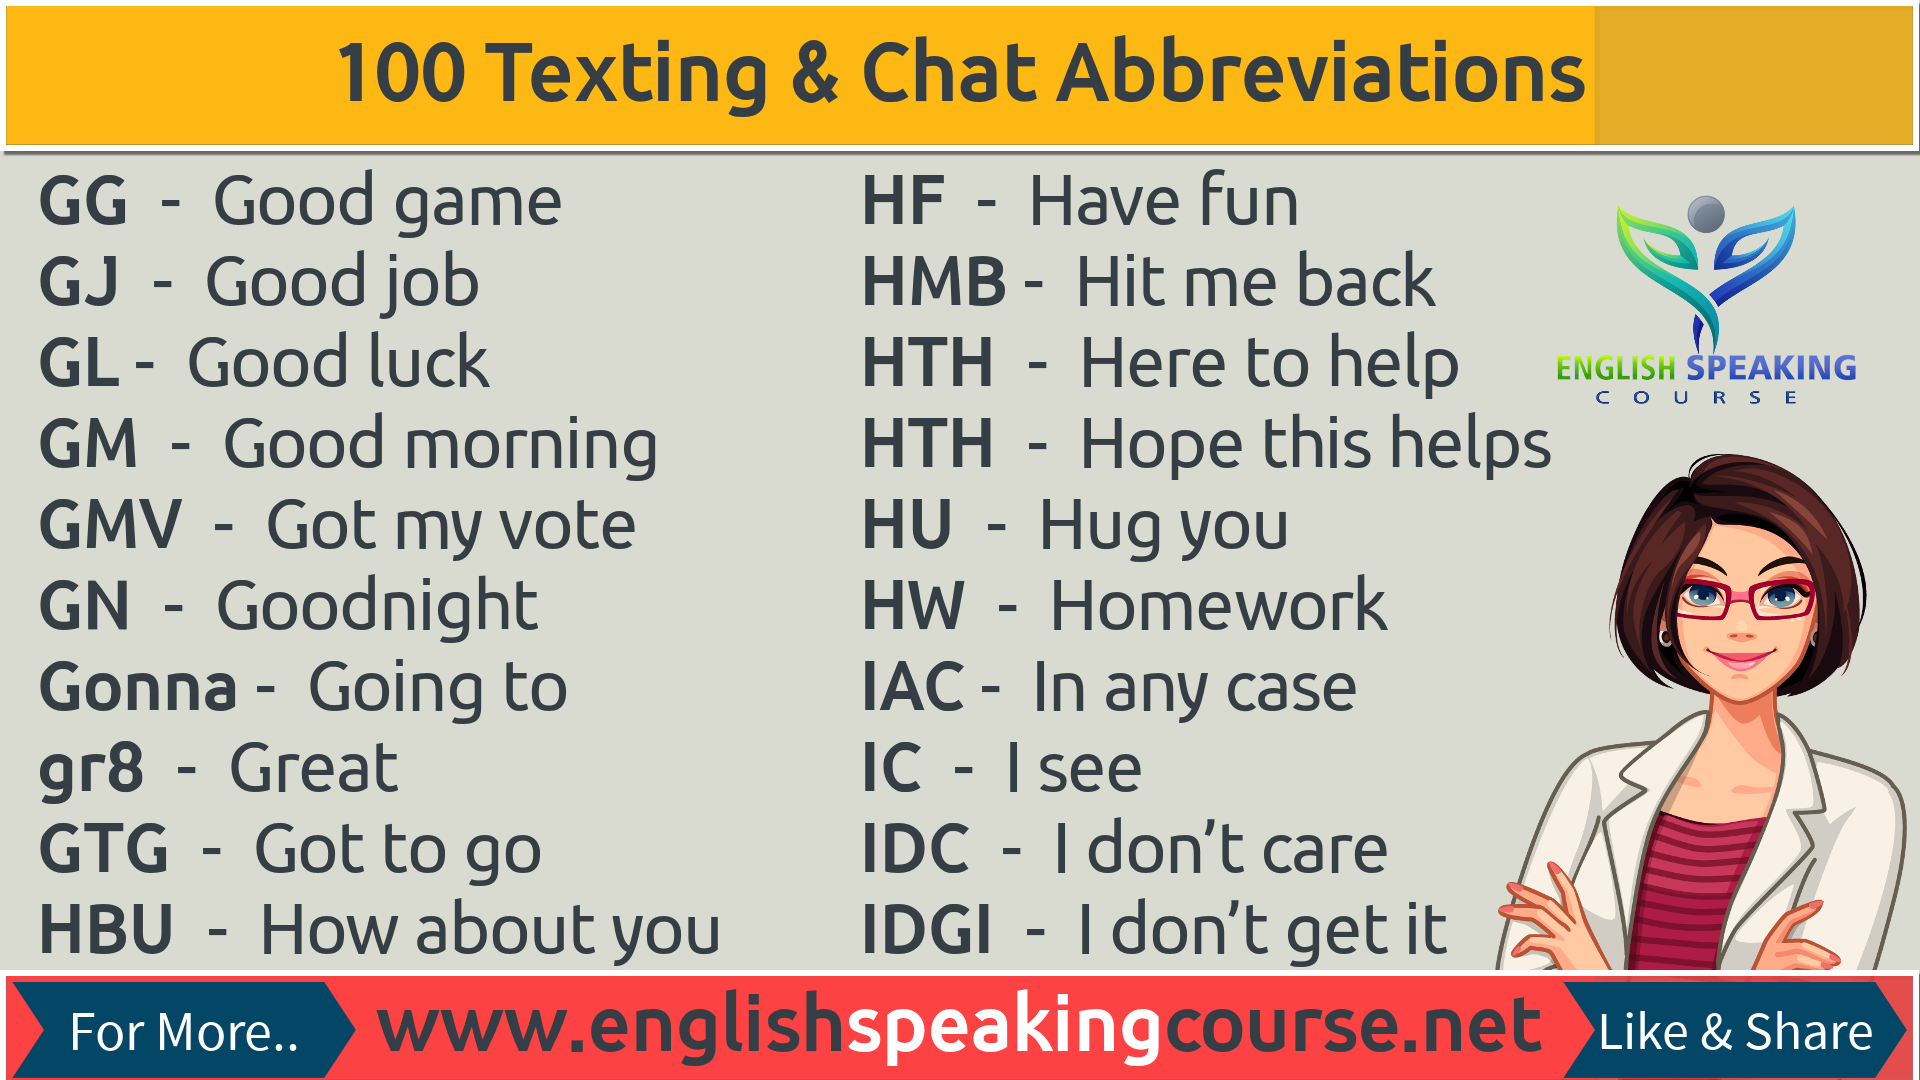 100 Texting & Chat Abbreviations